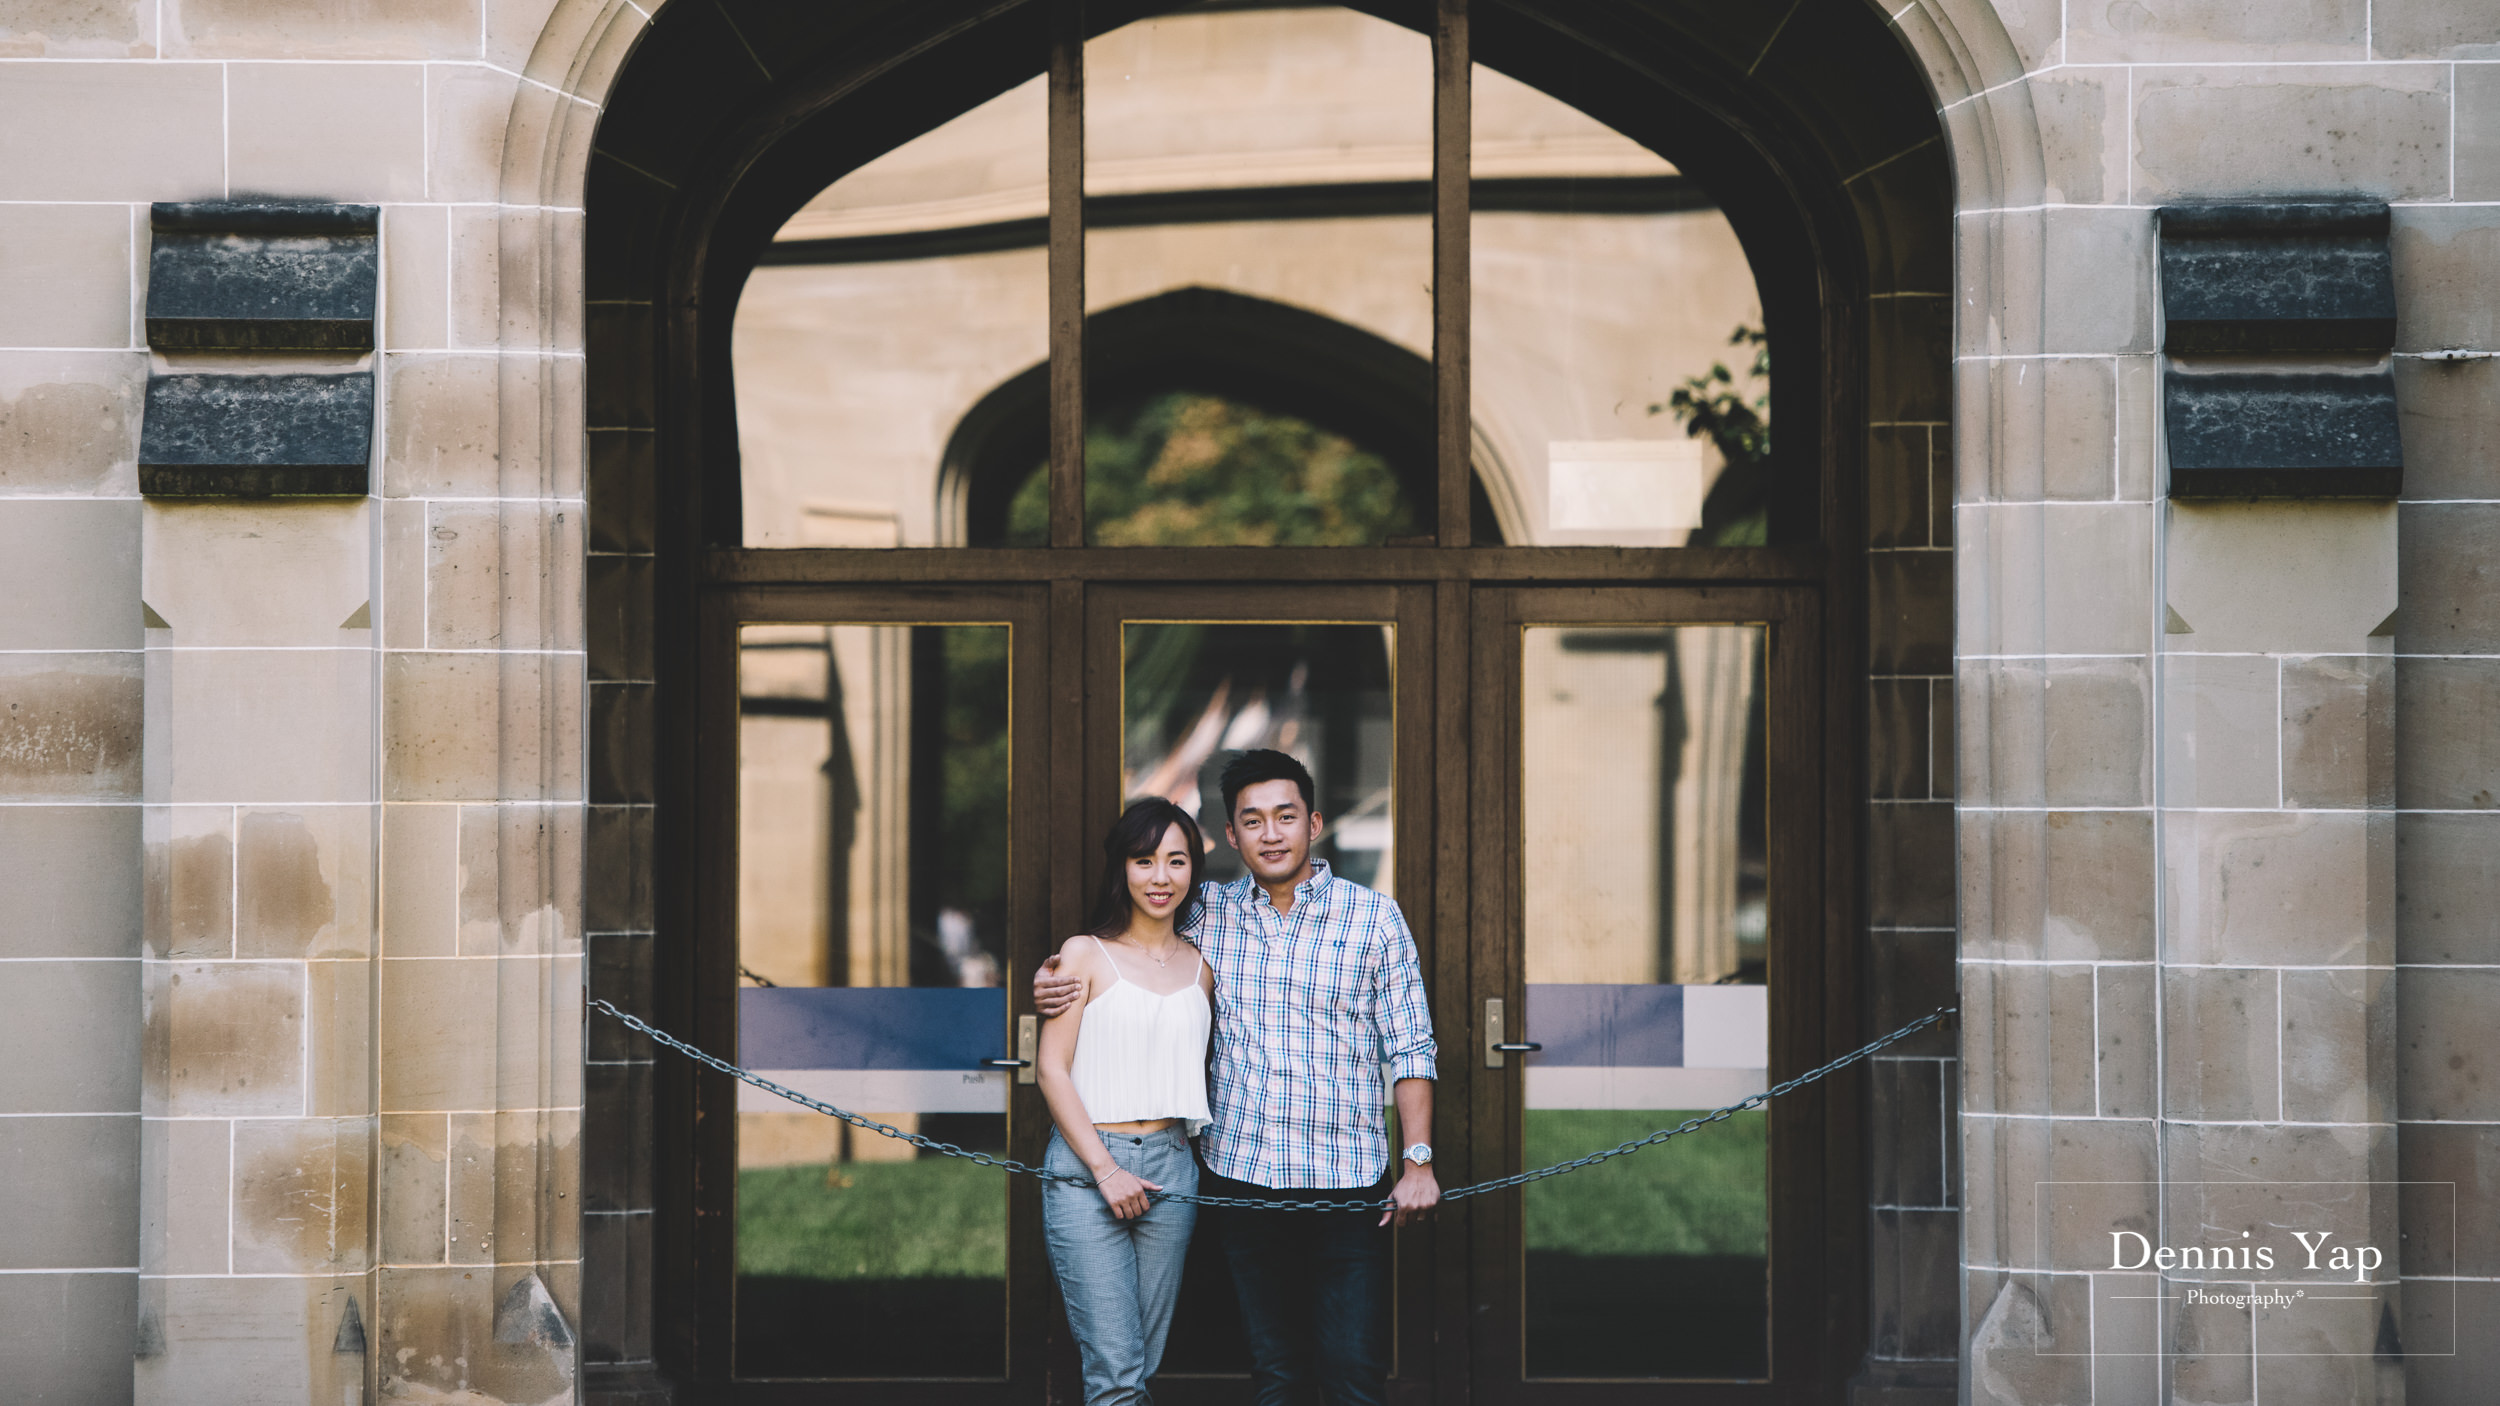 kok tee christine pre wedding melbourne dennis yap malaysia wedding photographer destination top 10-2.jpg